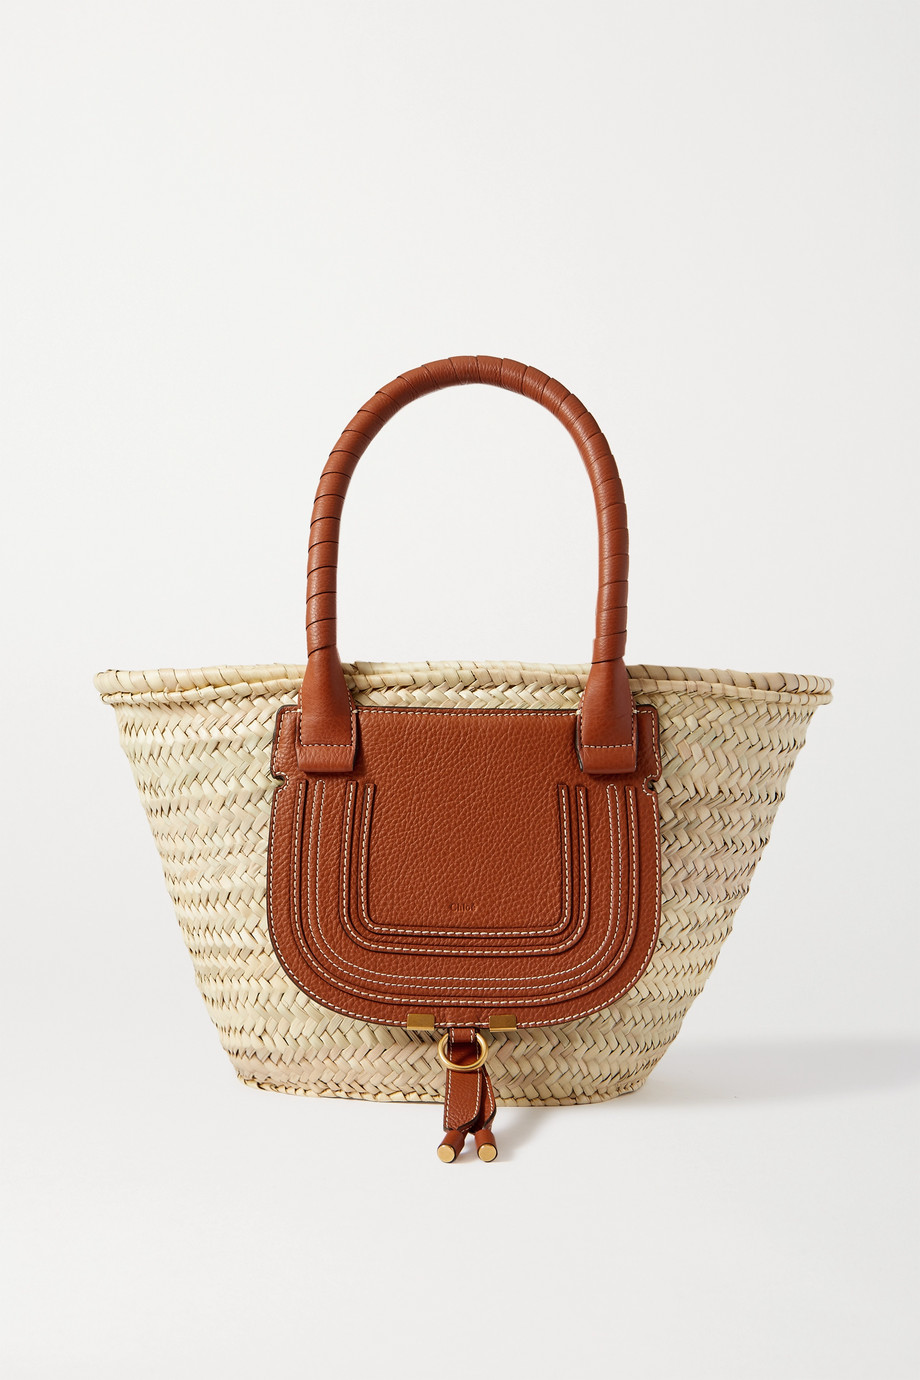 CHLOÉ Marcie leather-trimmed raffia tote